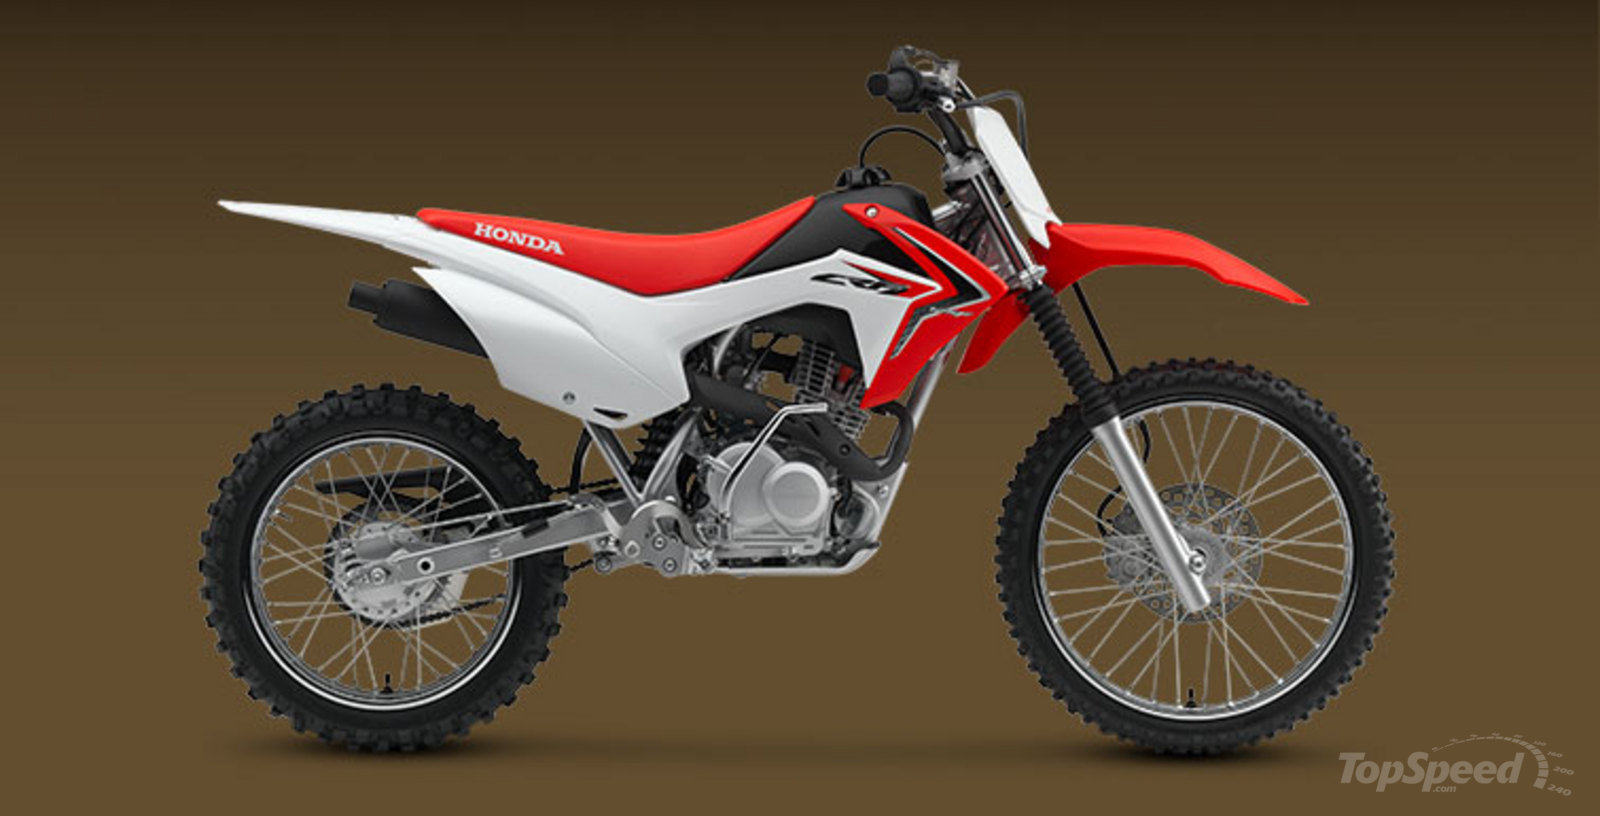 2014 honda crf125f big wheel review top speed. Black Bedroom Furniture Sets. Home Design Ideas